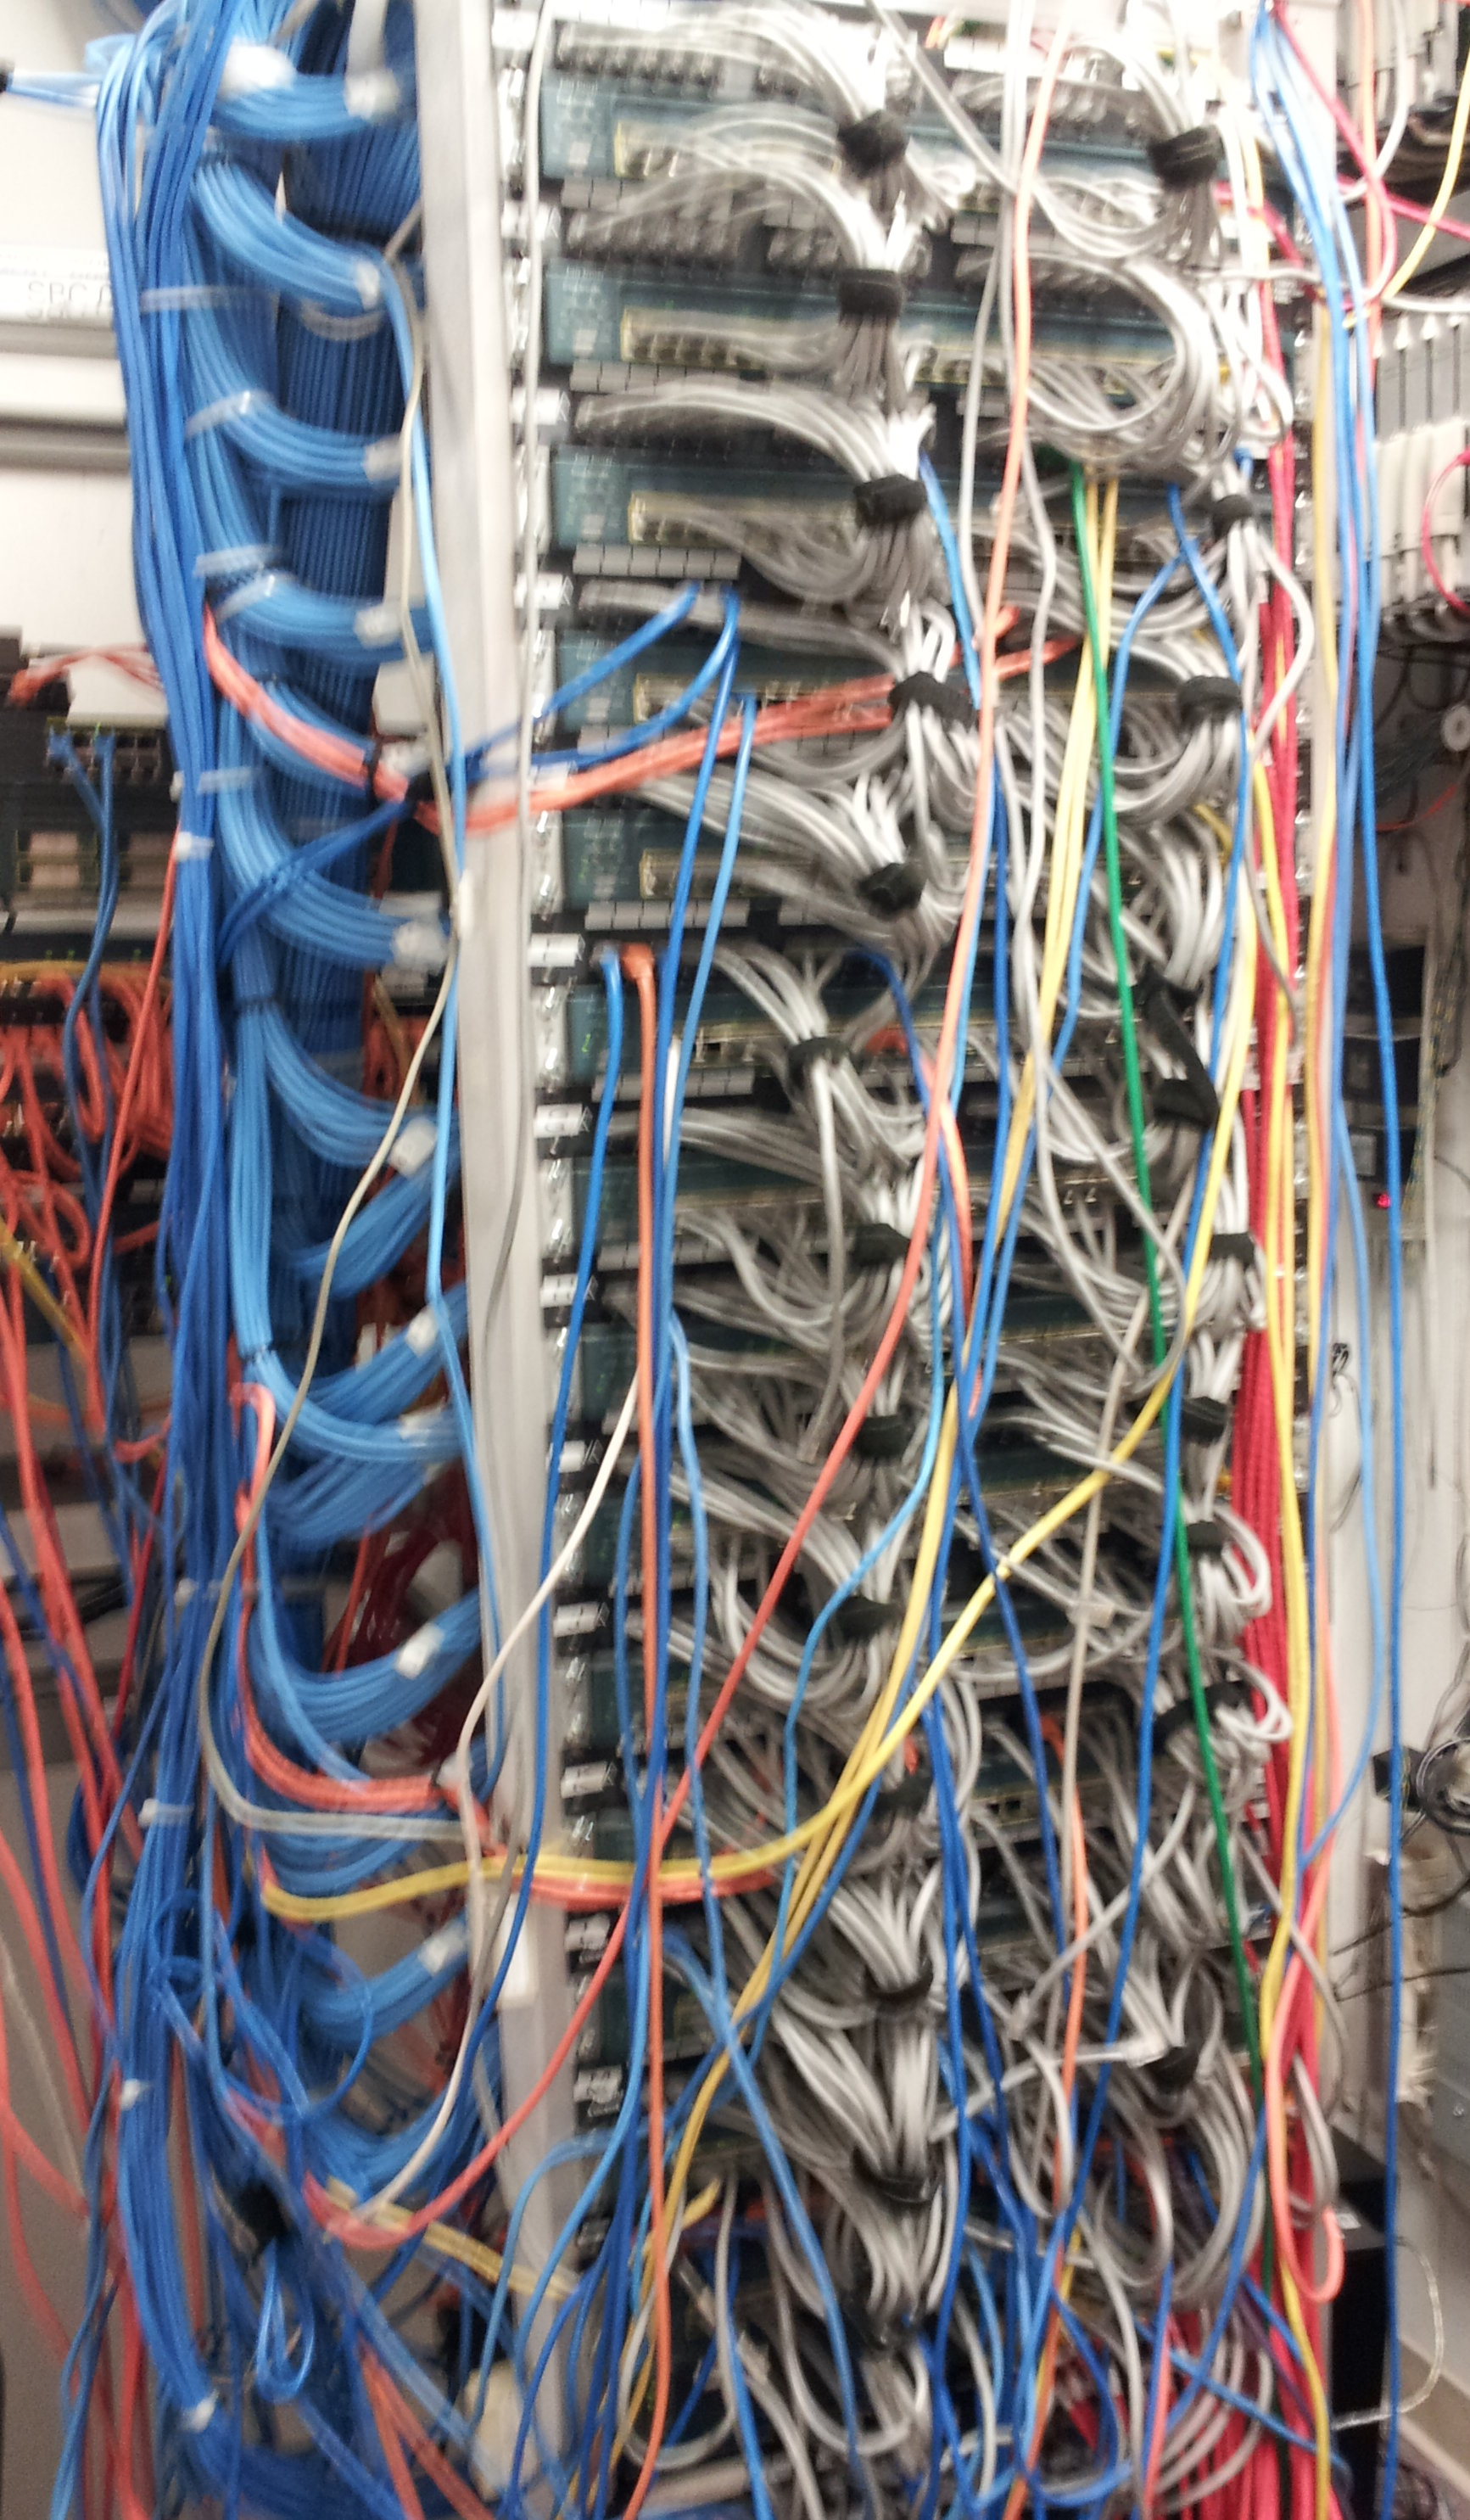 messy wiring closet wiring diagram 10 messy cable closets server rooms that desperately need help